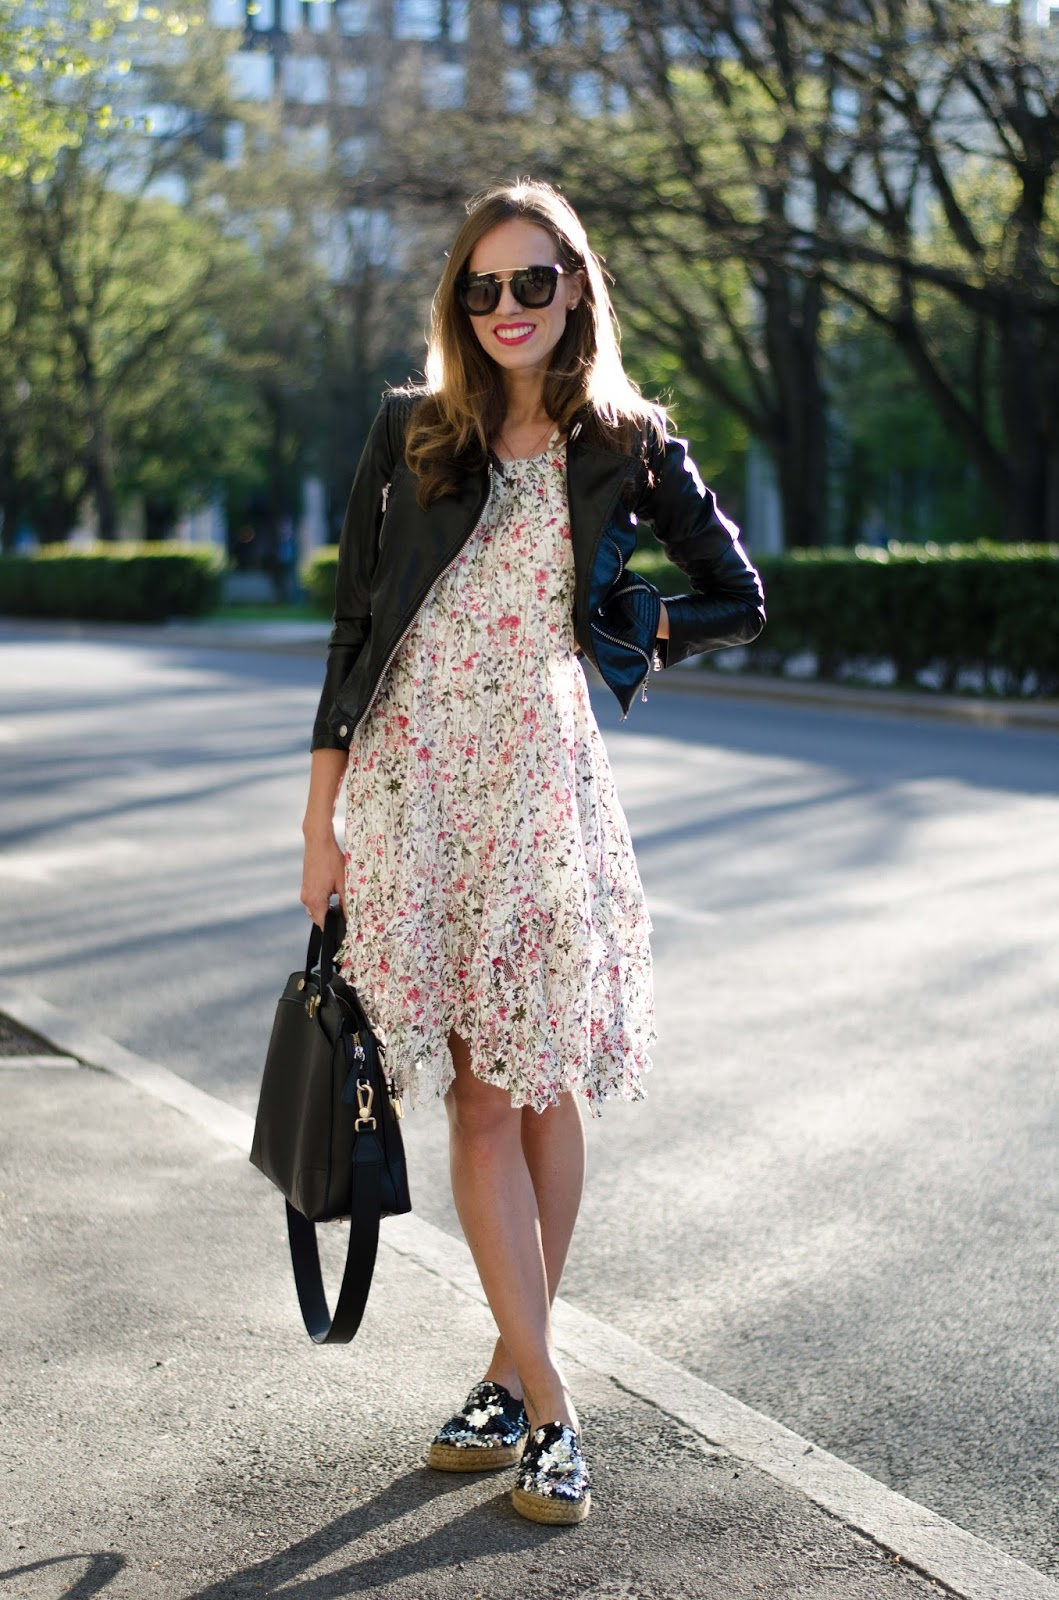 kristjaana mere floral lace dress leather jacket espadrilles spring outfit